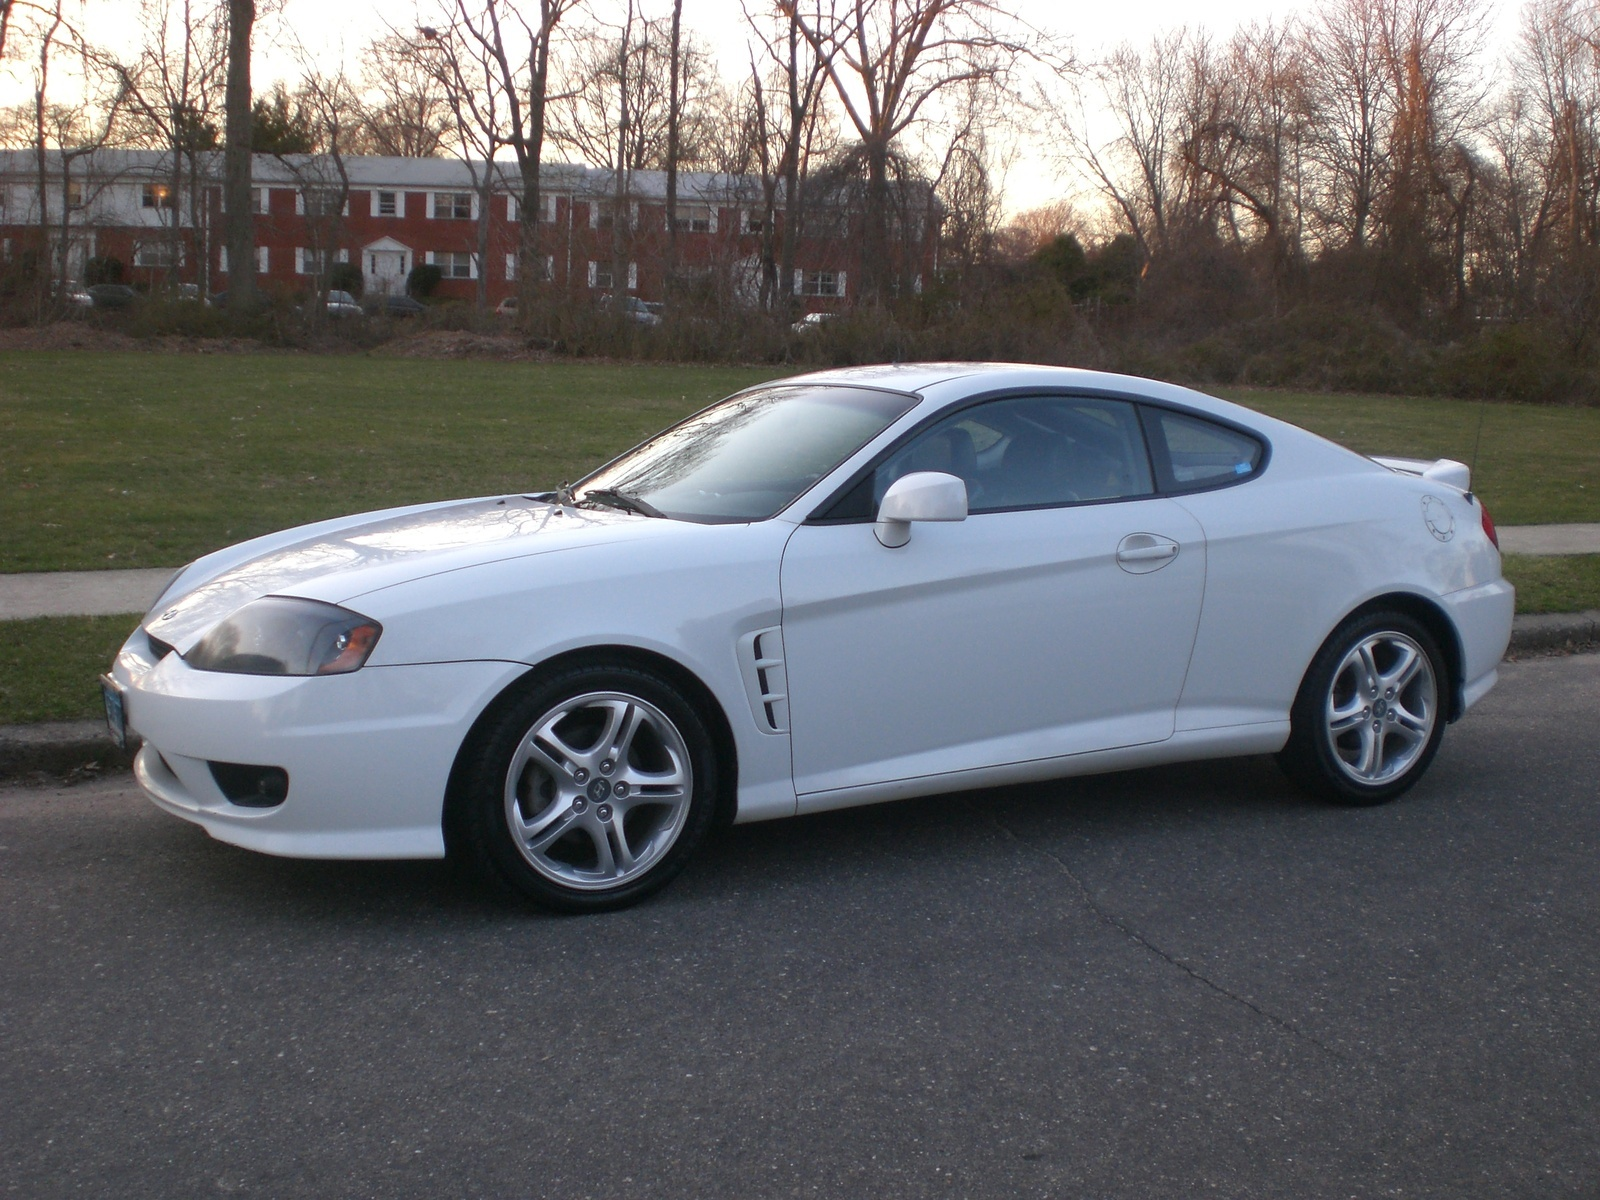 coupe genesis tiburon pic picturescars pictur hyundai pictures gs on